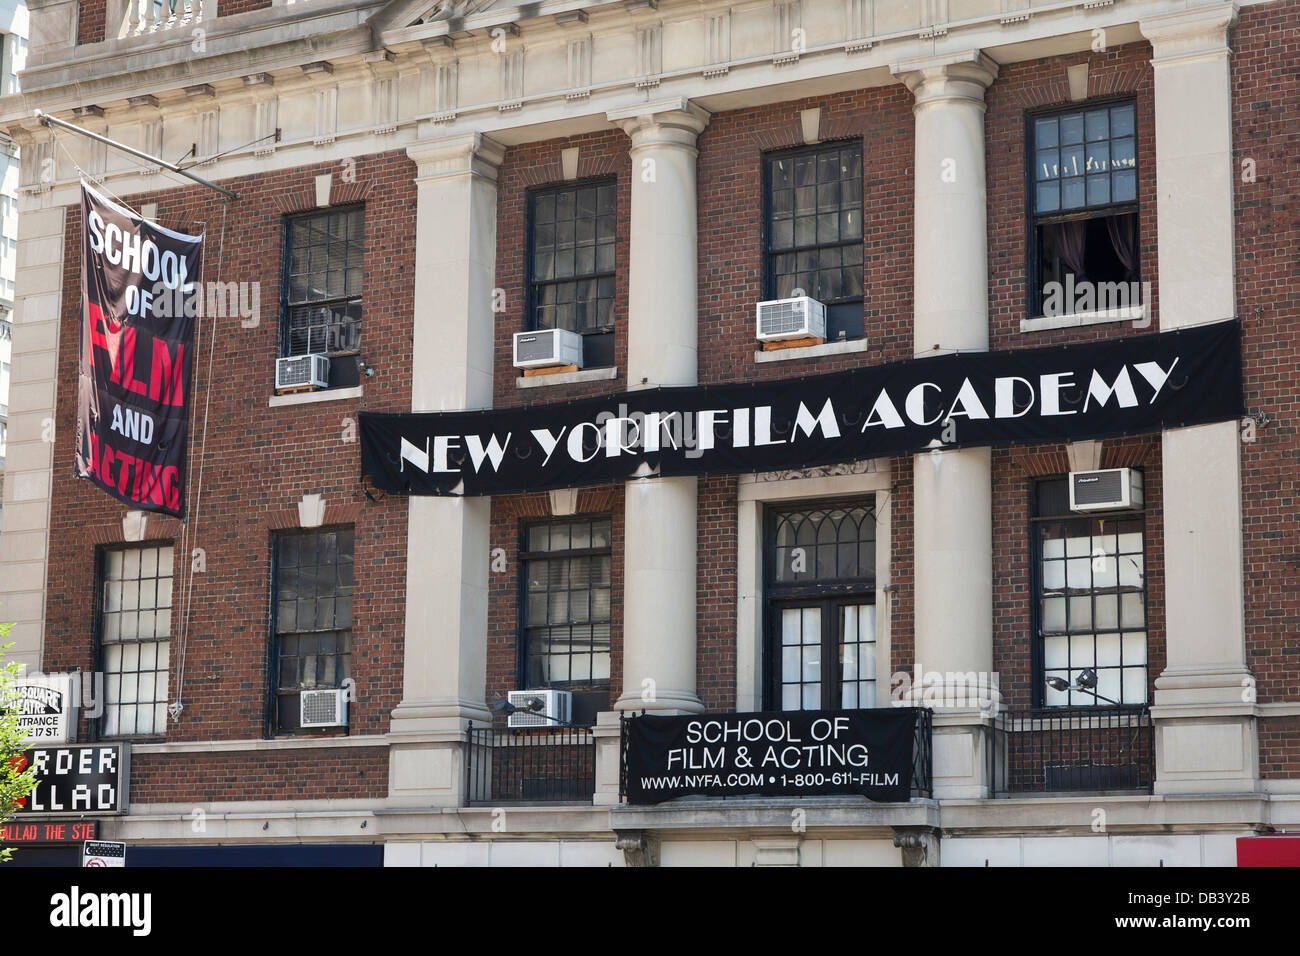 New York Film Academy sign on the building of the School of Film and Acting in New York City - Stock Image